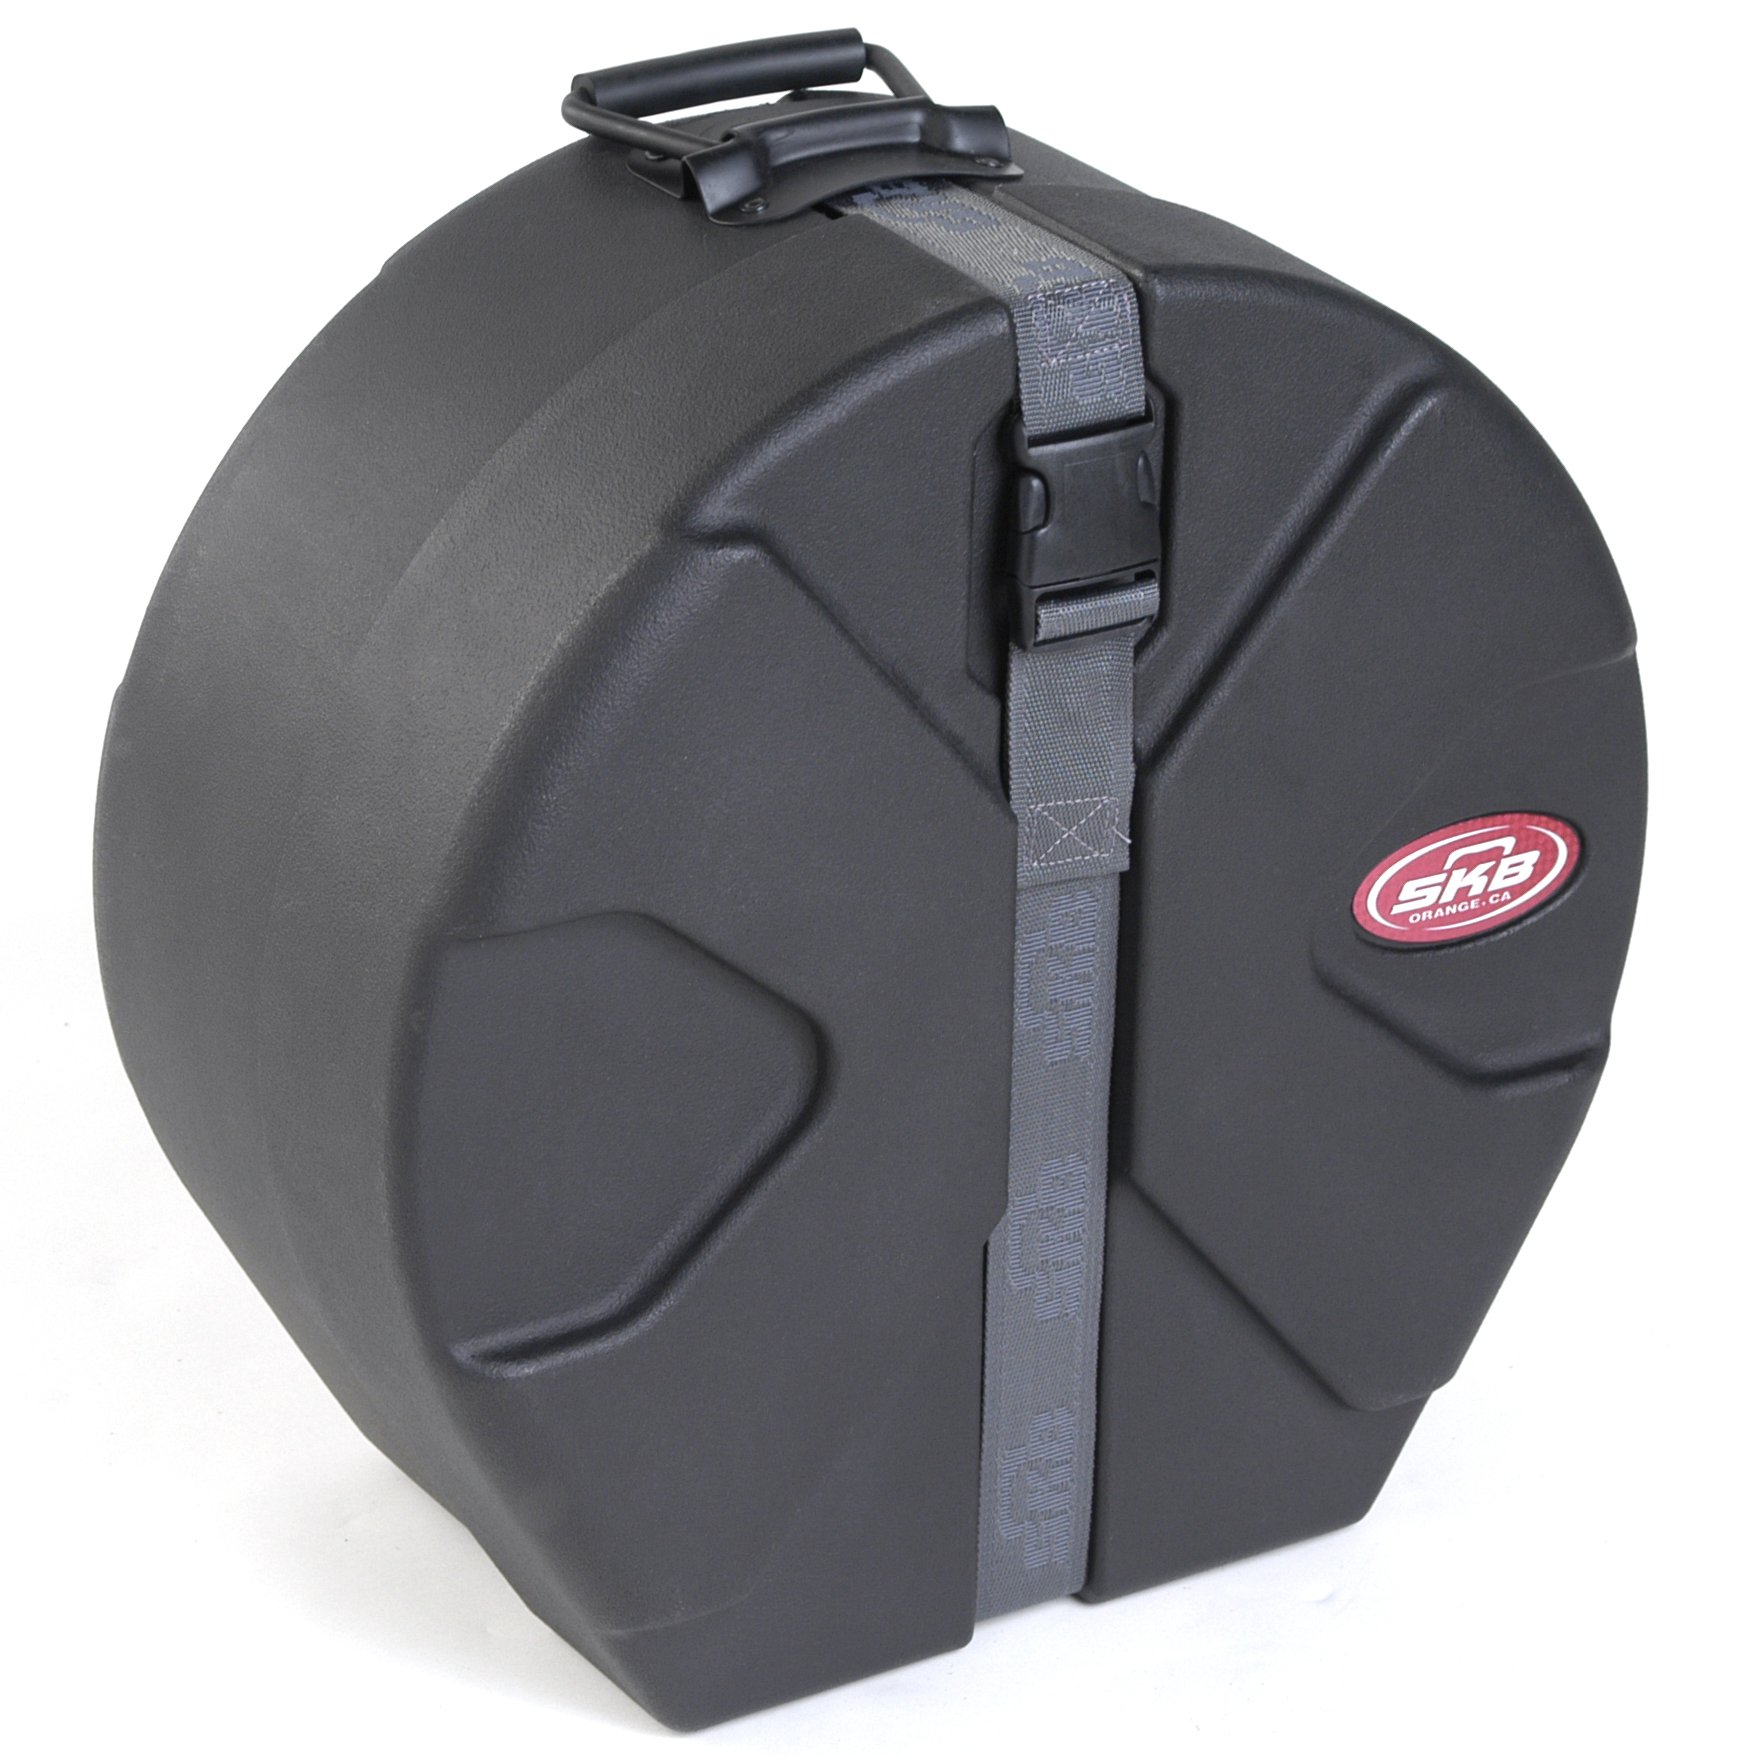 SKB 5 X 13 Snare Case with Padded Interior